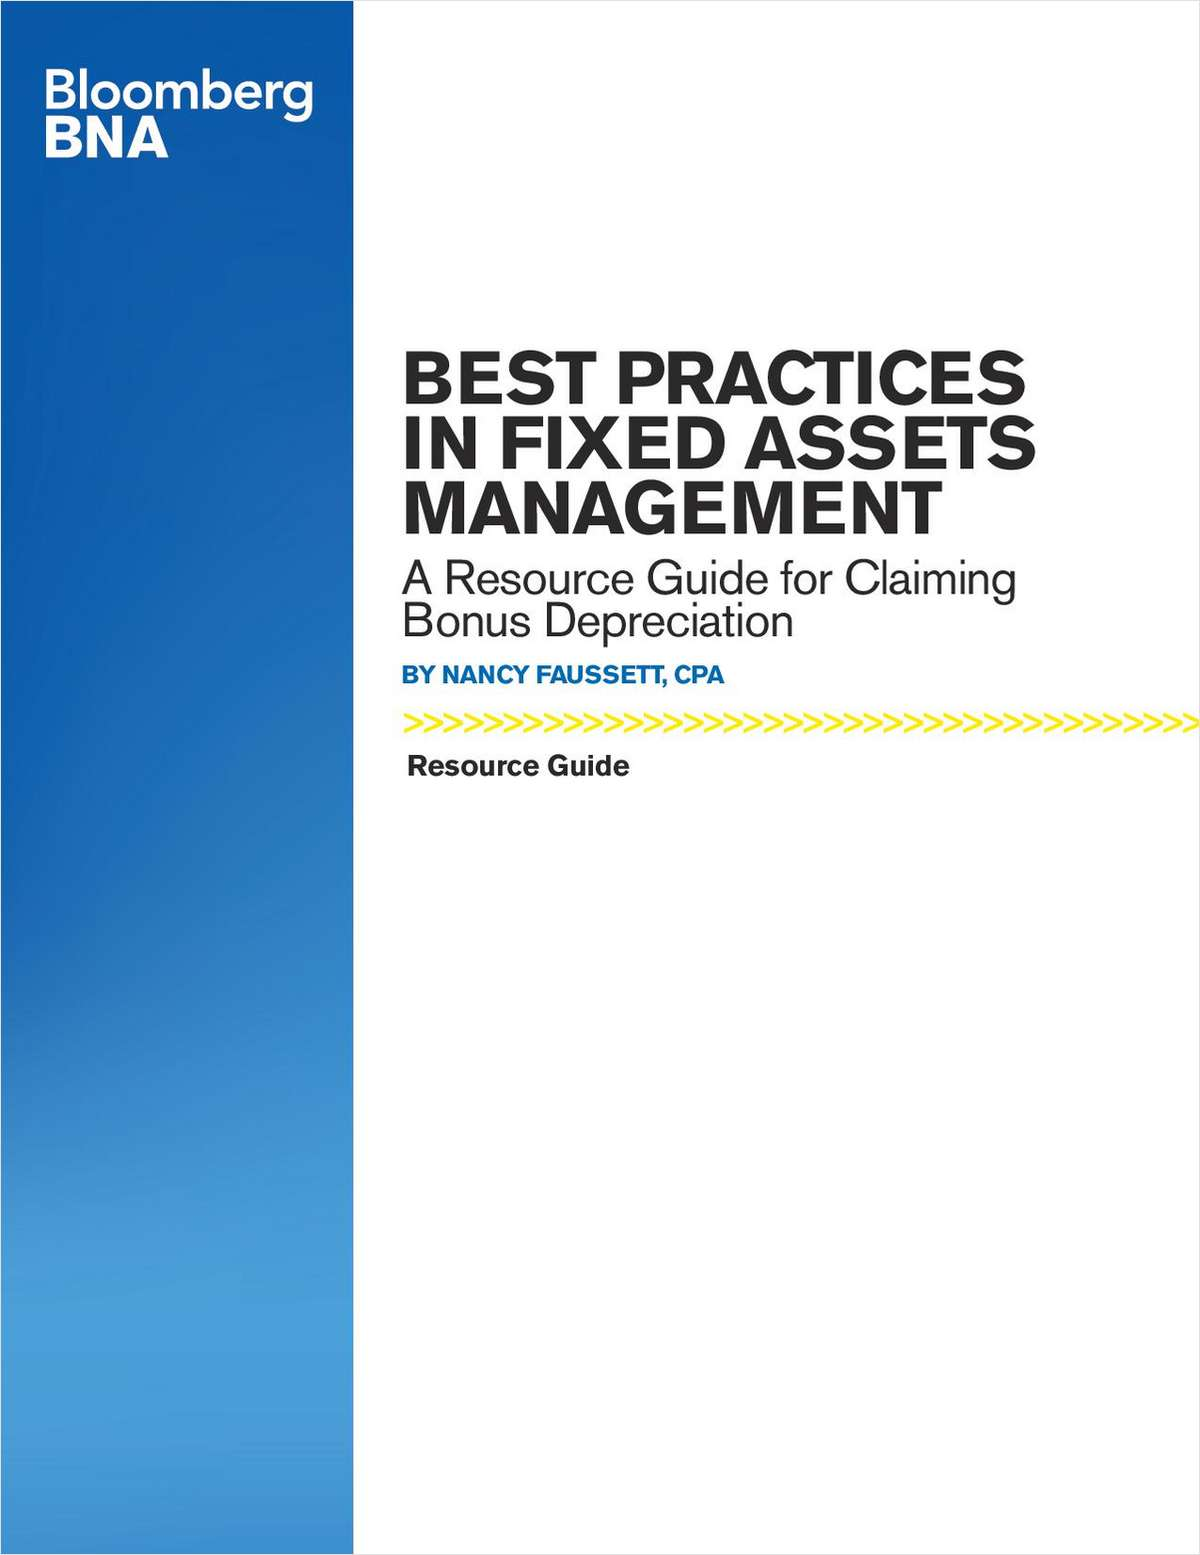 Best Practices in Fixed Assets Management